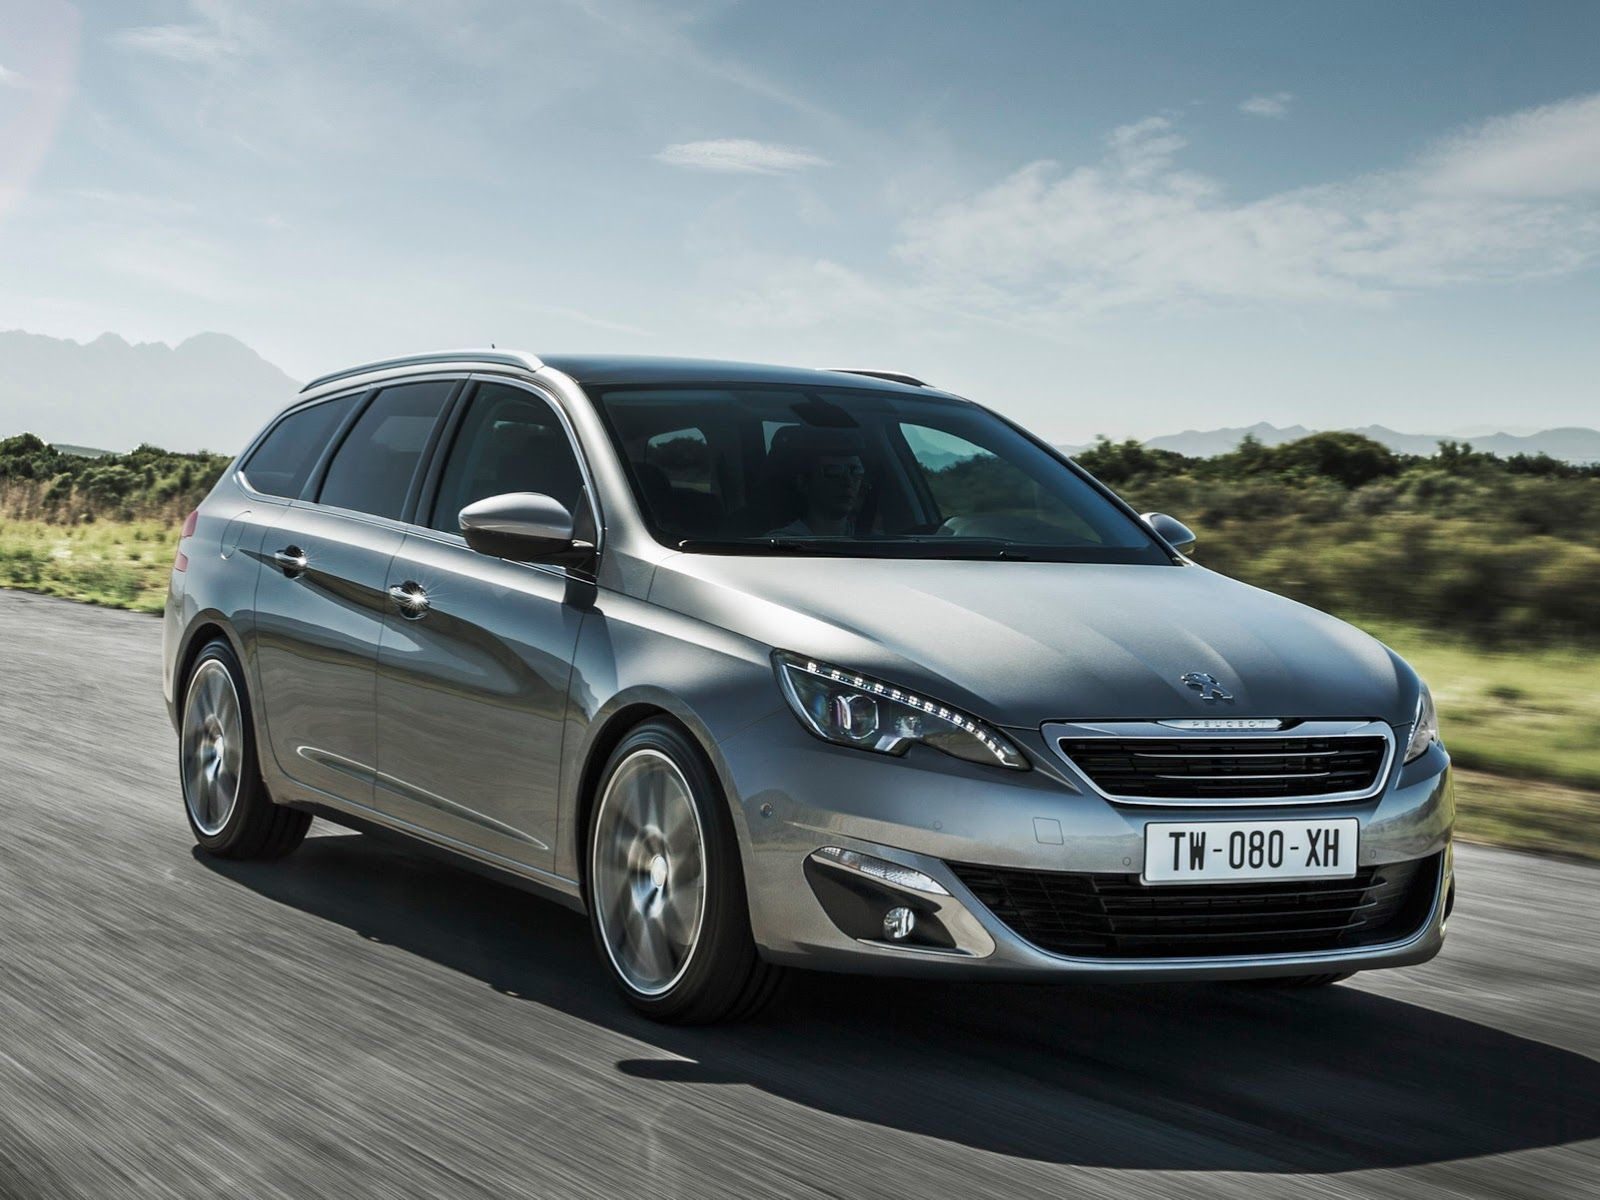 Peugeot Will Premiere New Turbo Petrols And Diesel Tech At Geneva Peugeot Peugeot France City Car